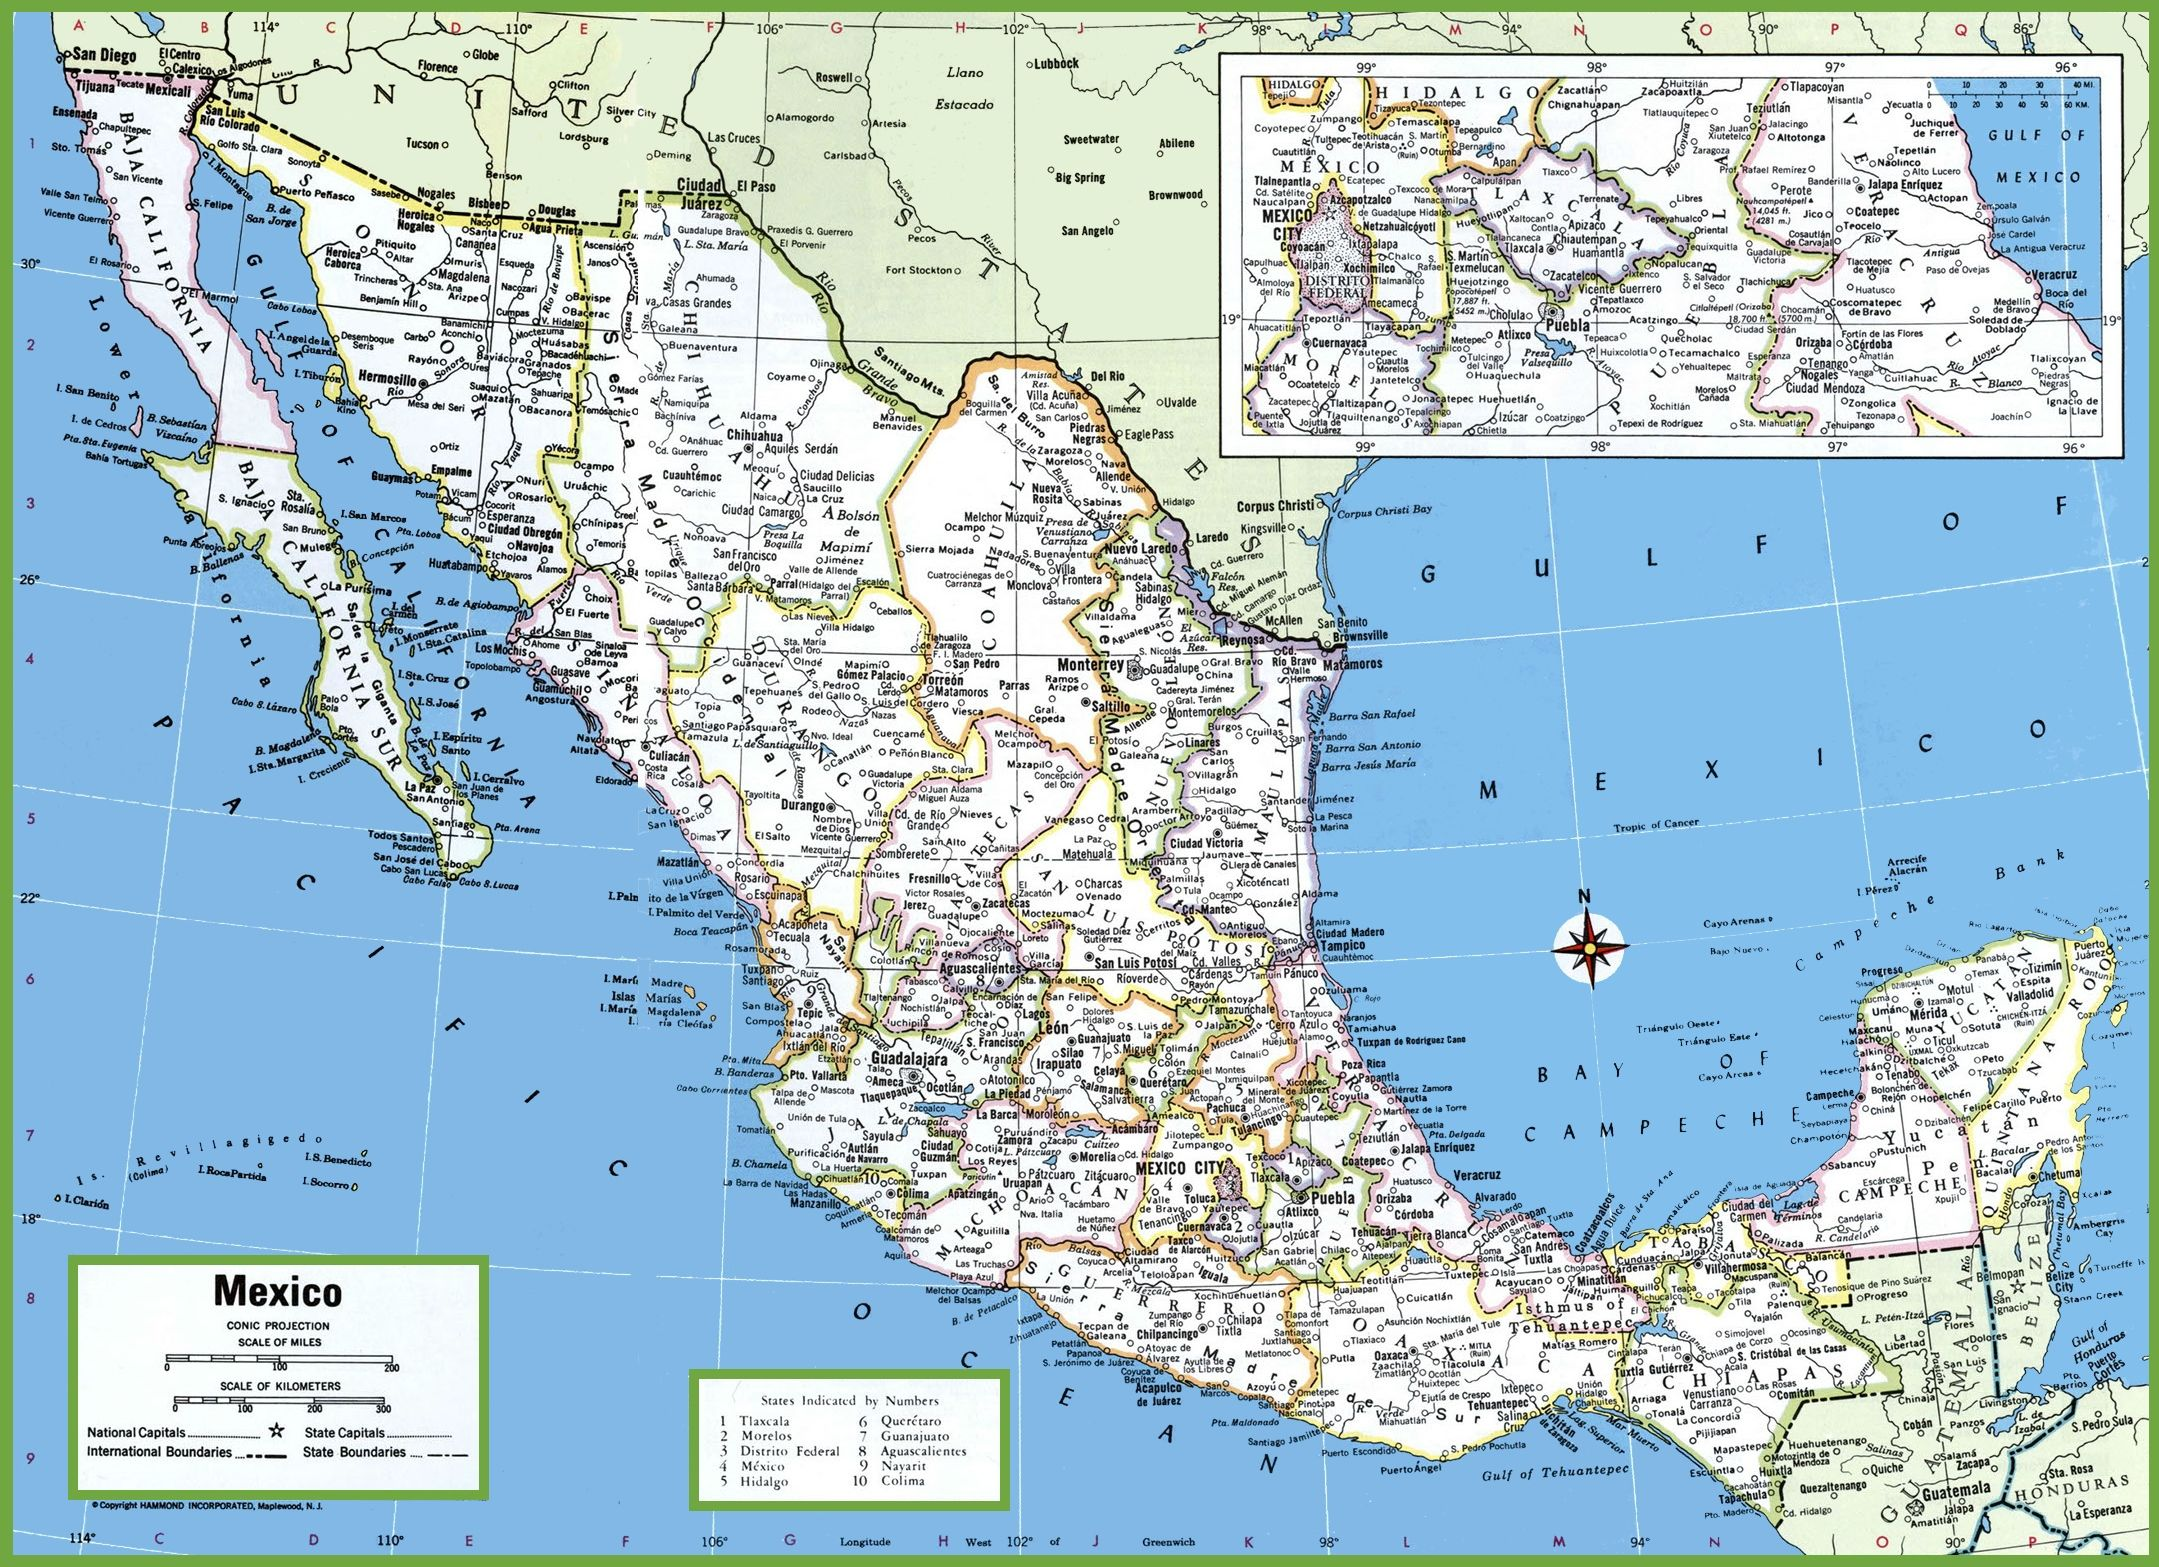 Map Of Mexico With Cities Large detailed map of Mexico with cities and towns | Wanderlust in